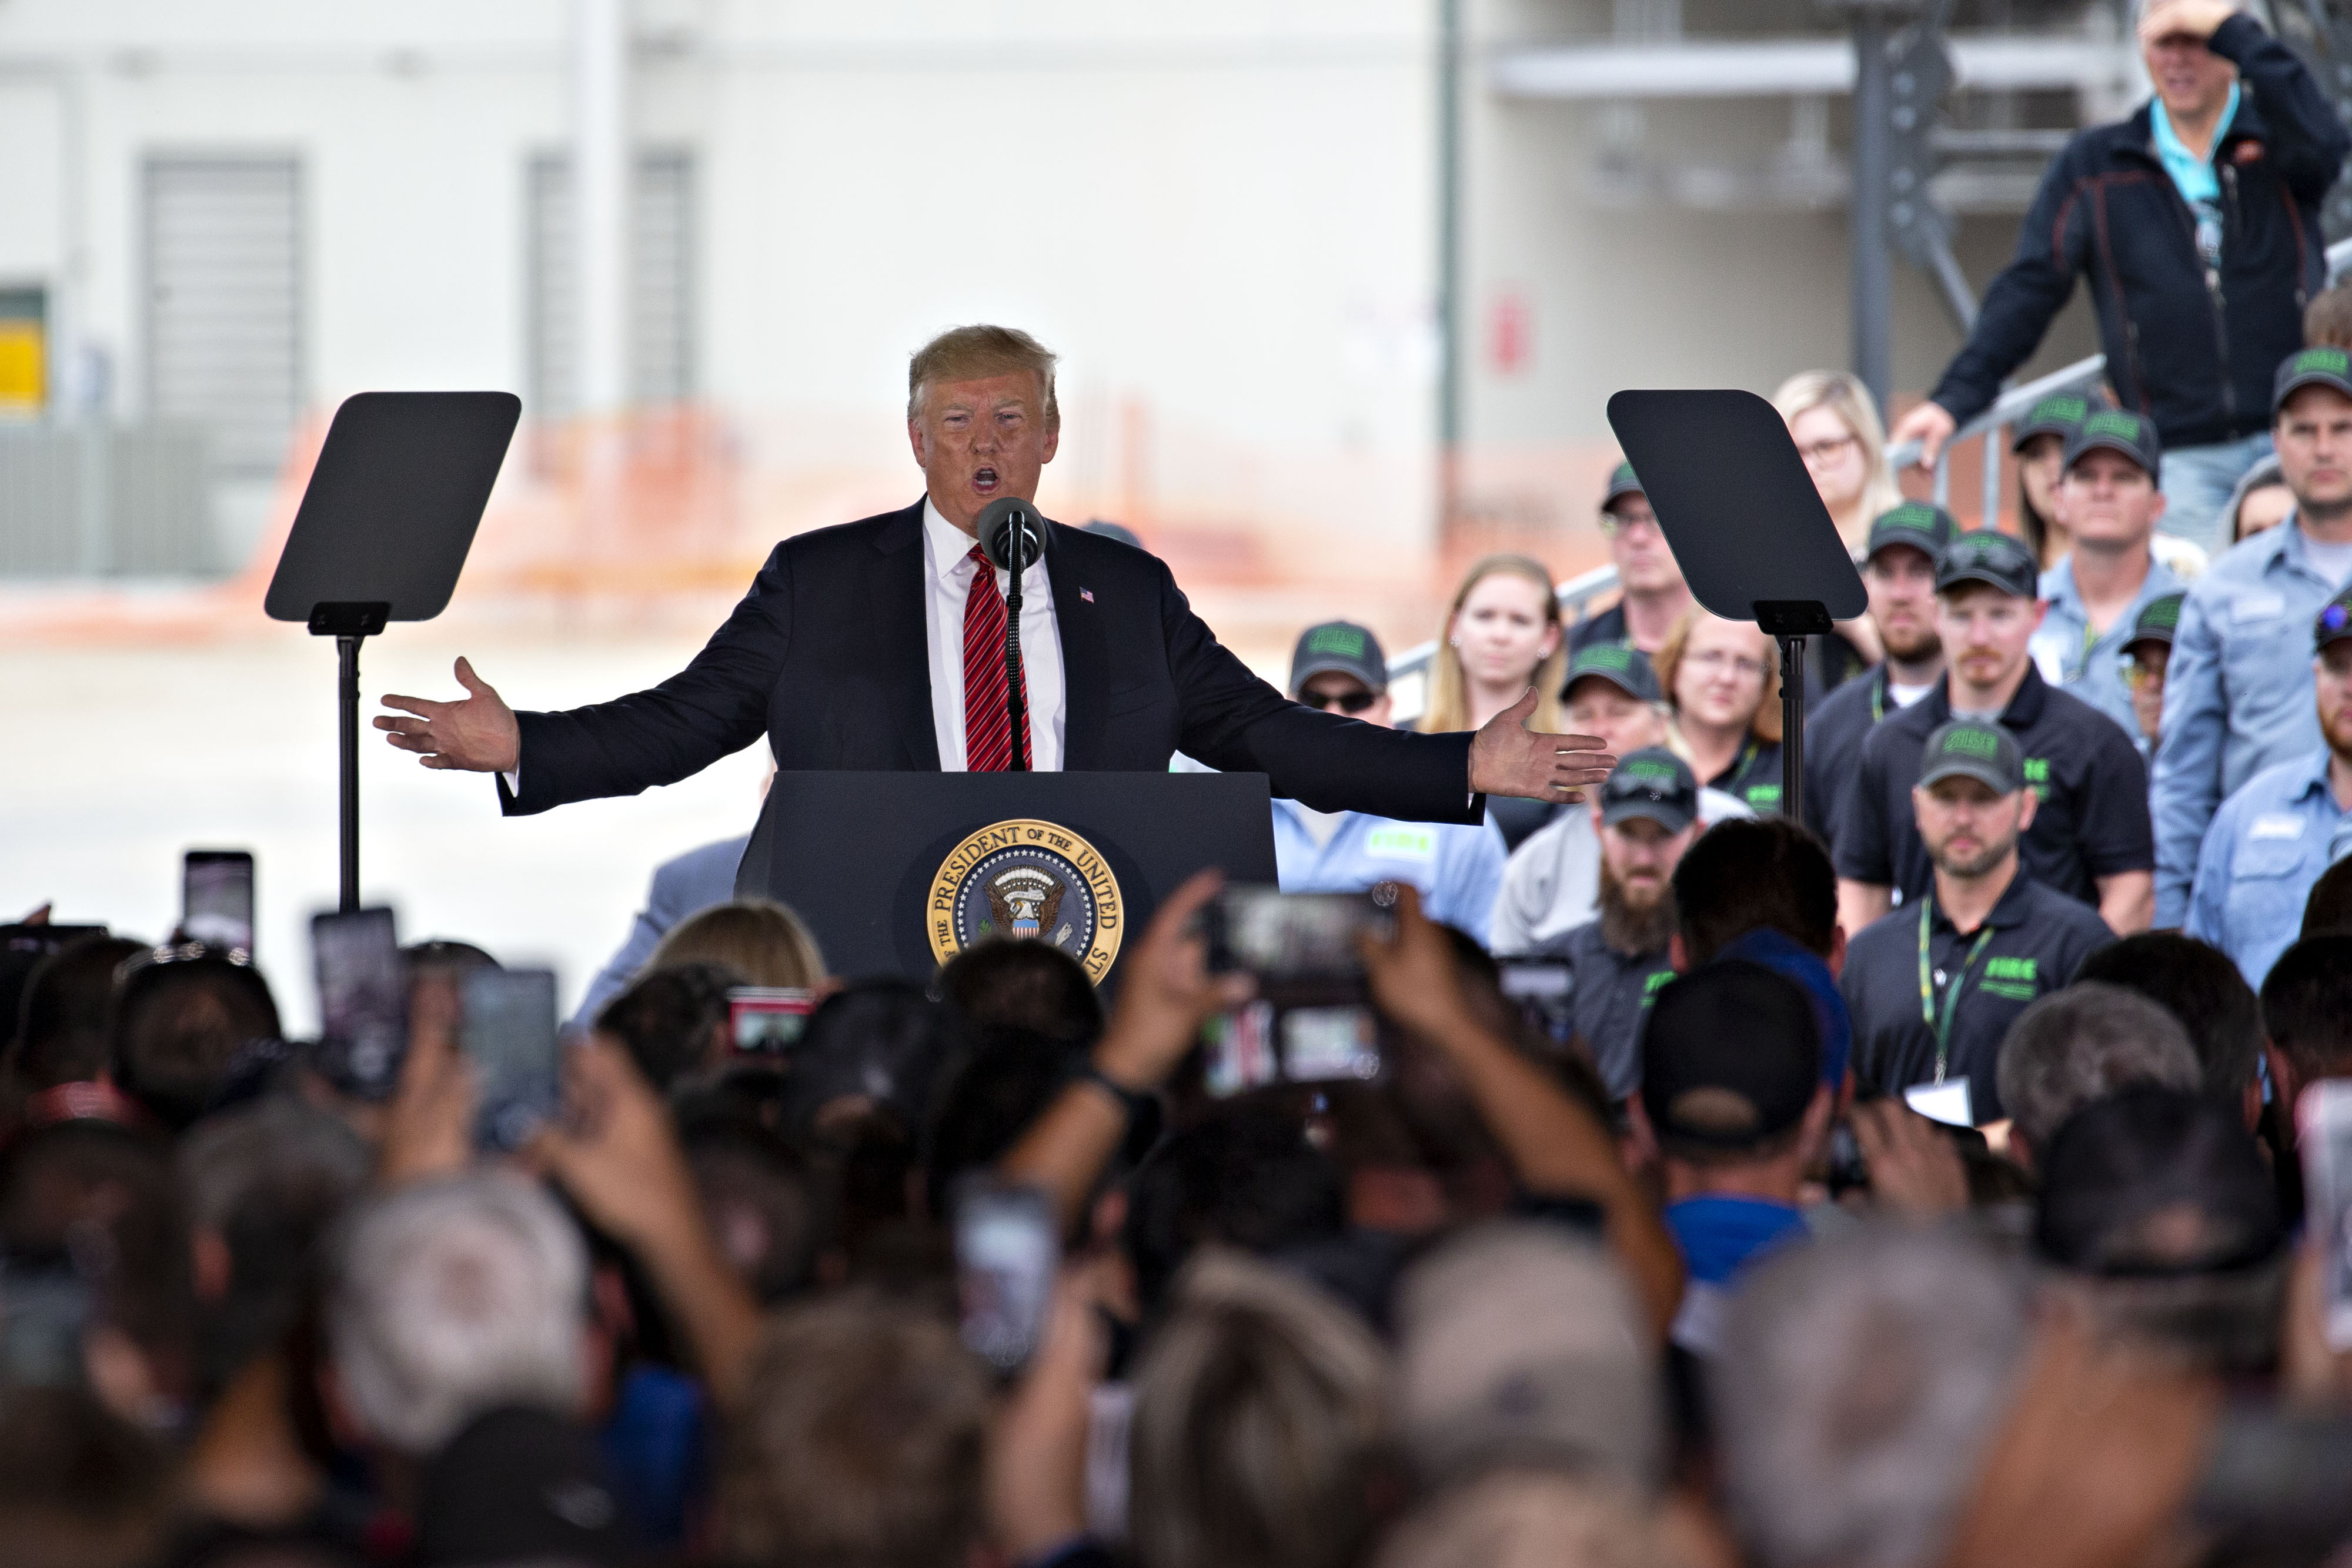 Donald Trump speaks at an ethanol facility in Council Bluffs, Iowa on June 11.